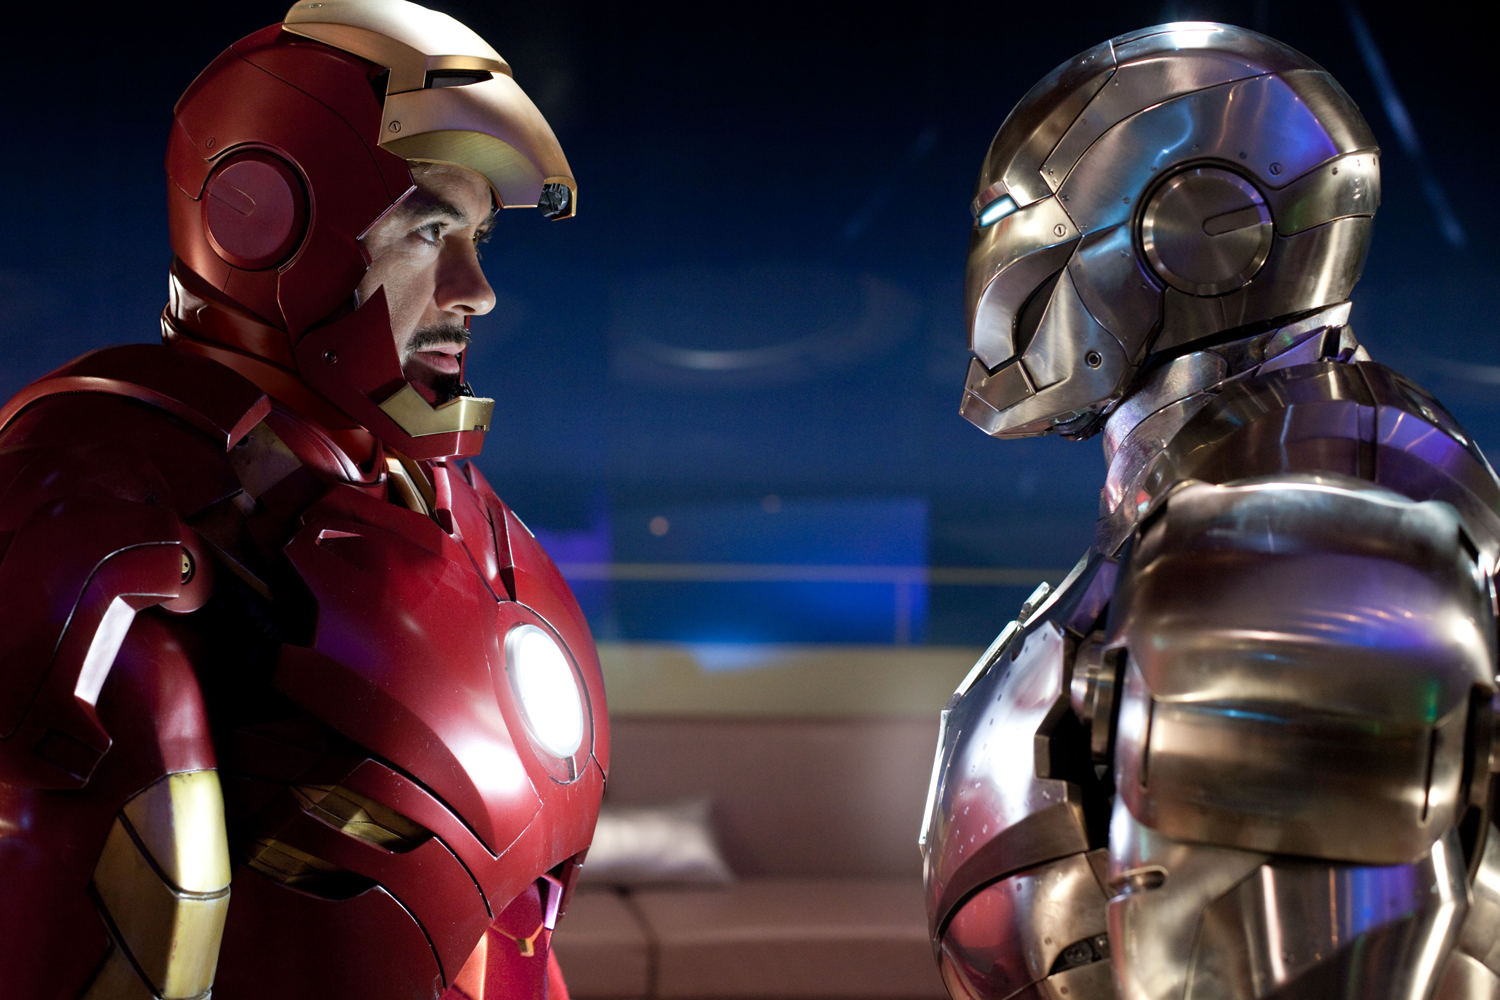 Watch Every One of Iron Man's Kills in This Supercut